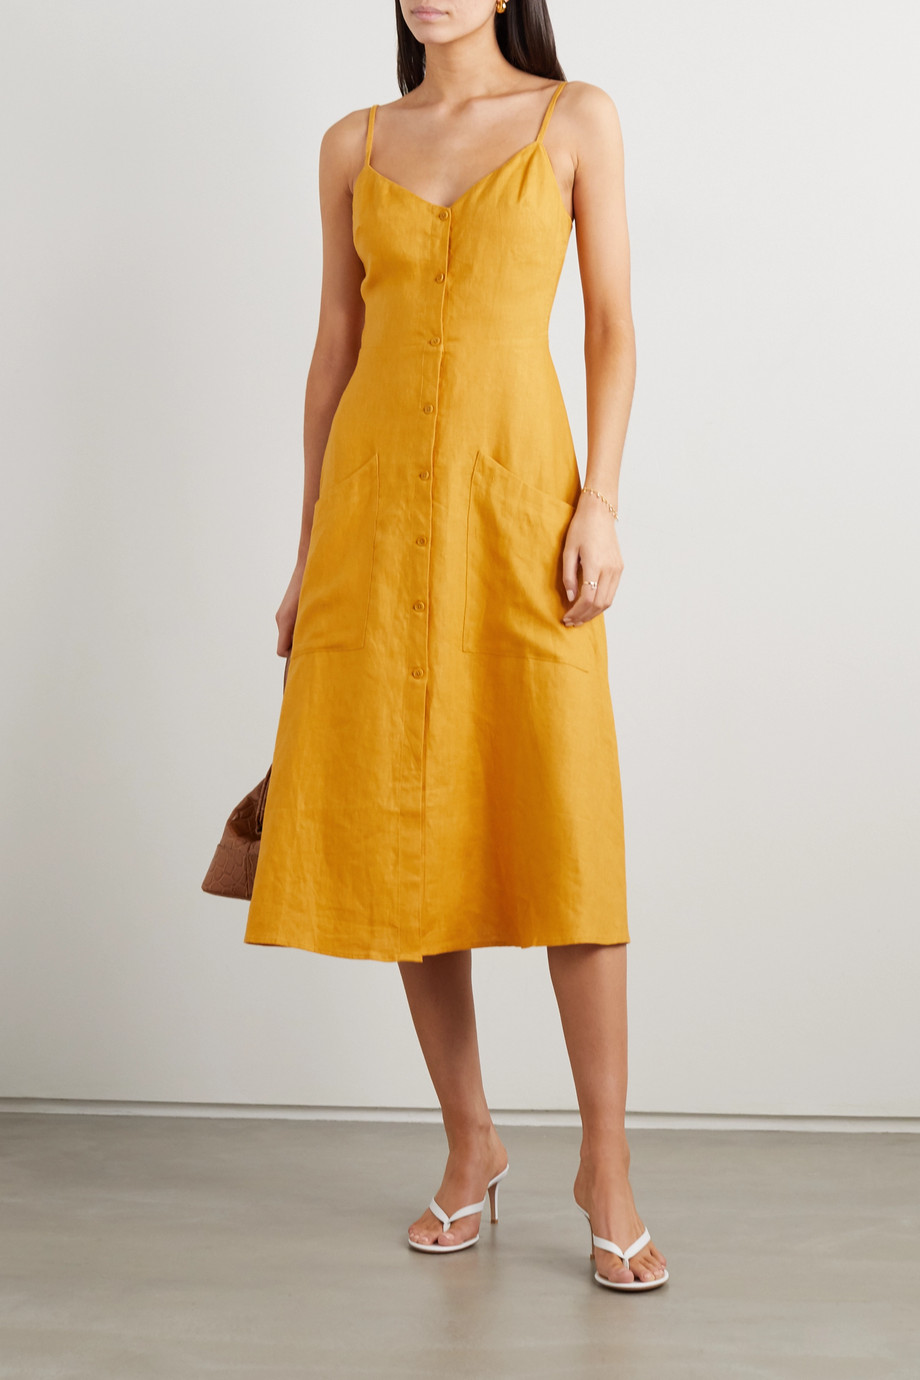 Reformation + NET SUSTAIN Parke linen midi dress